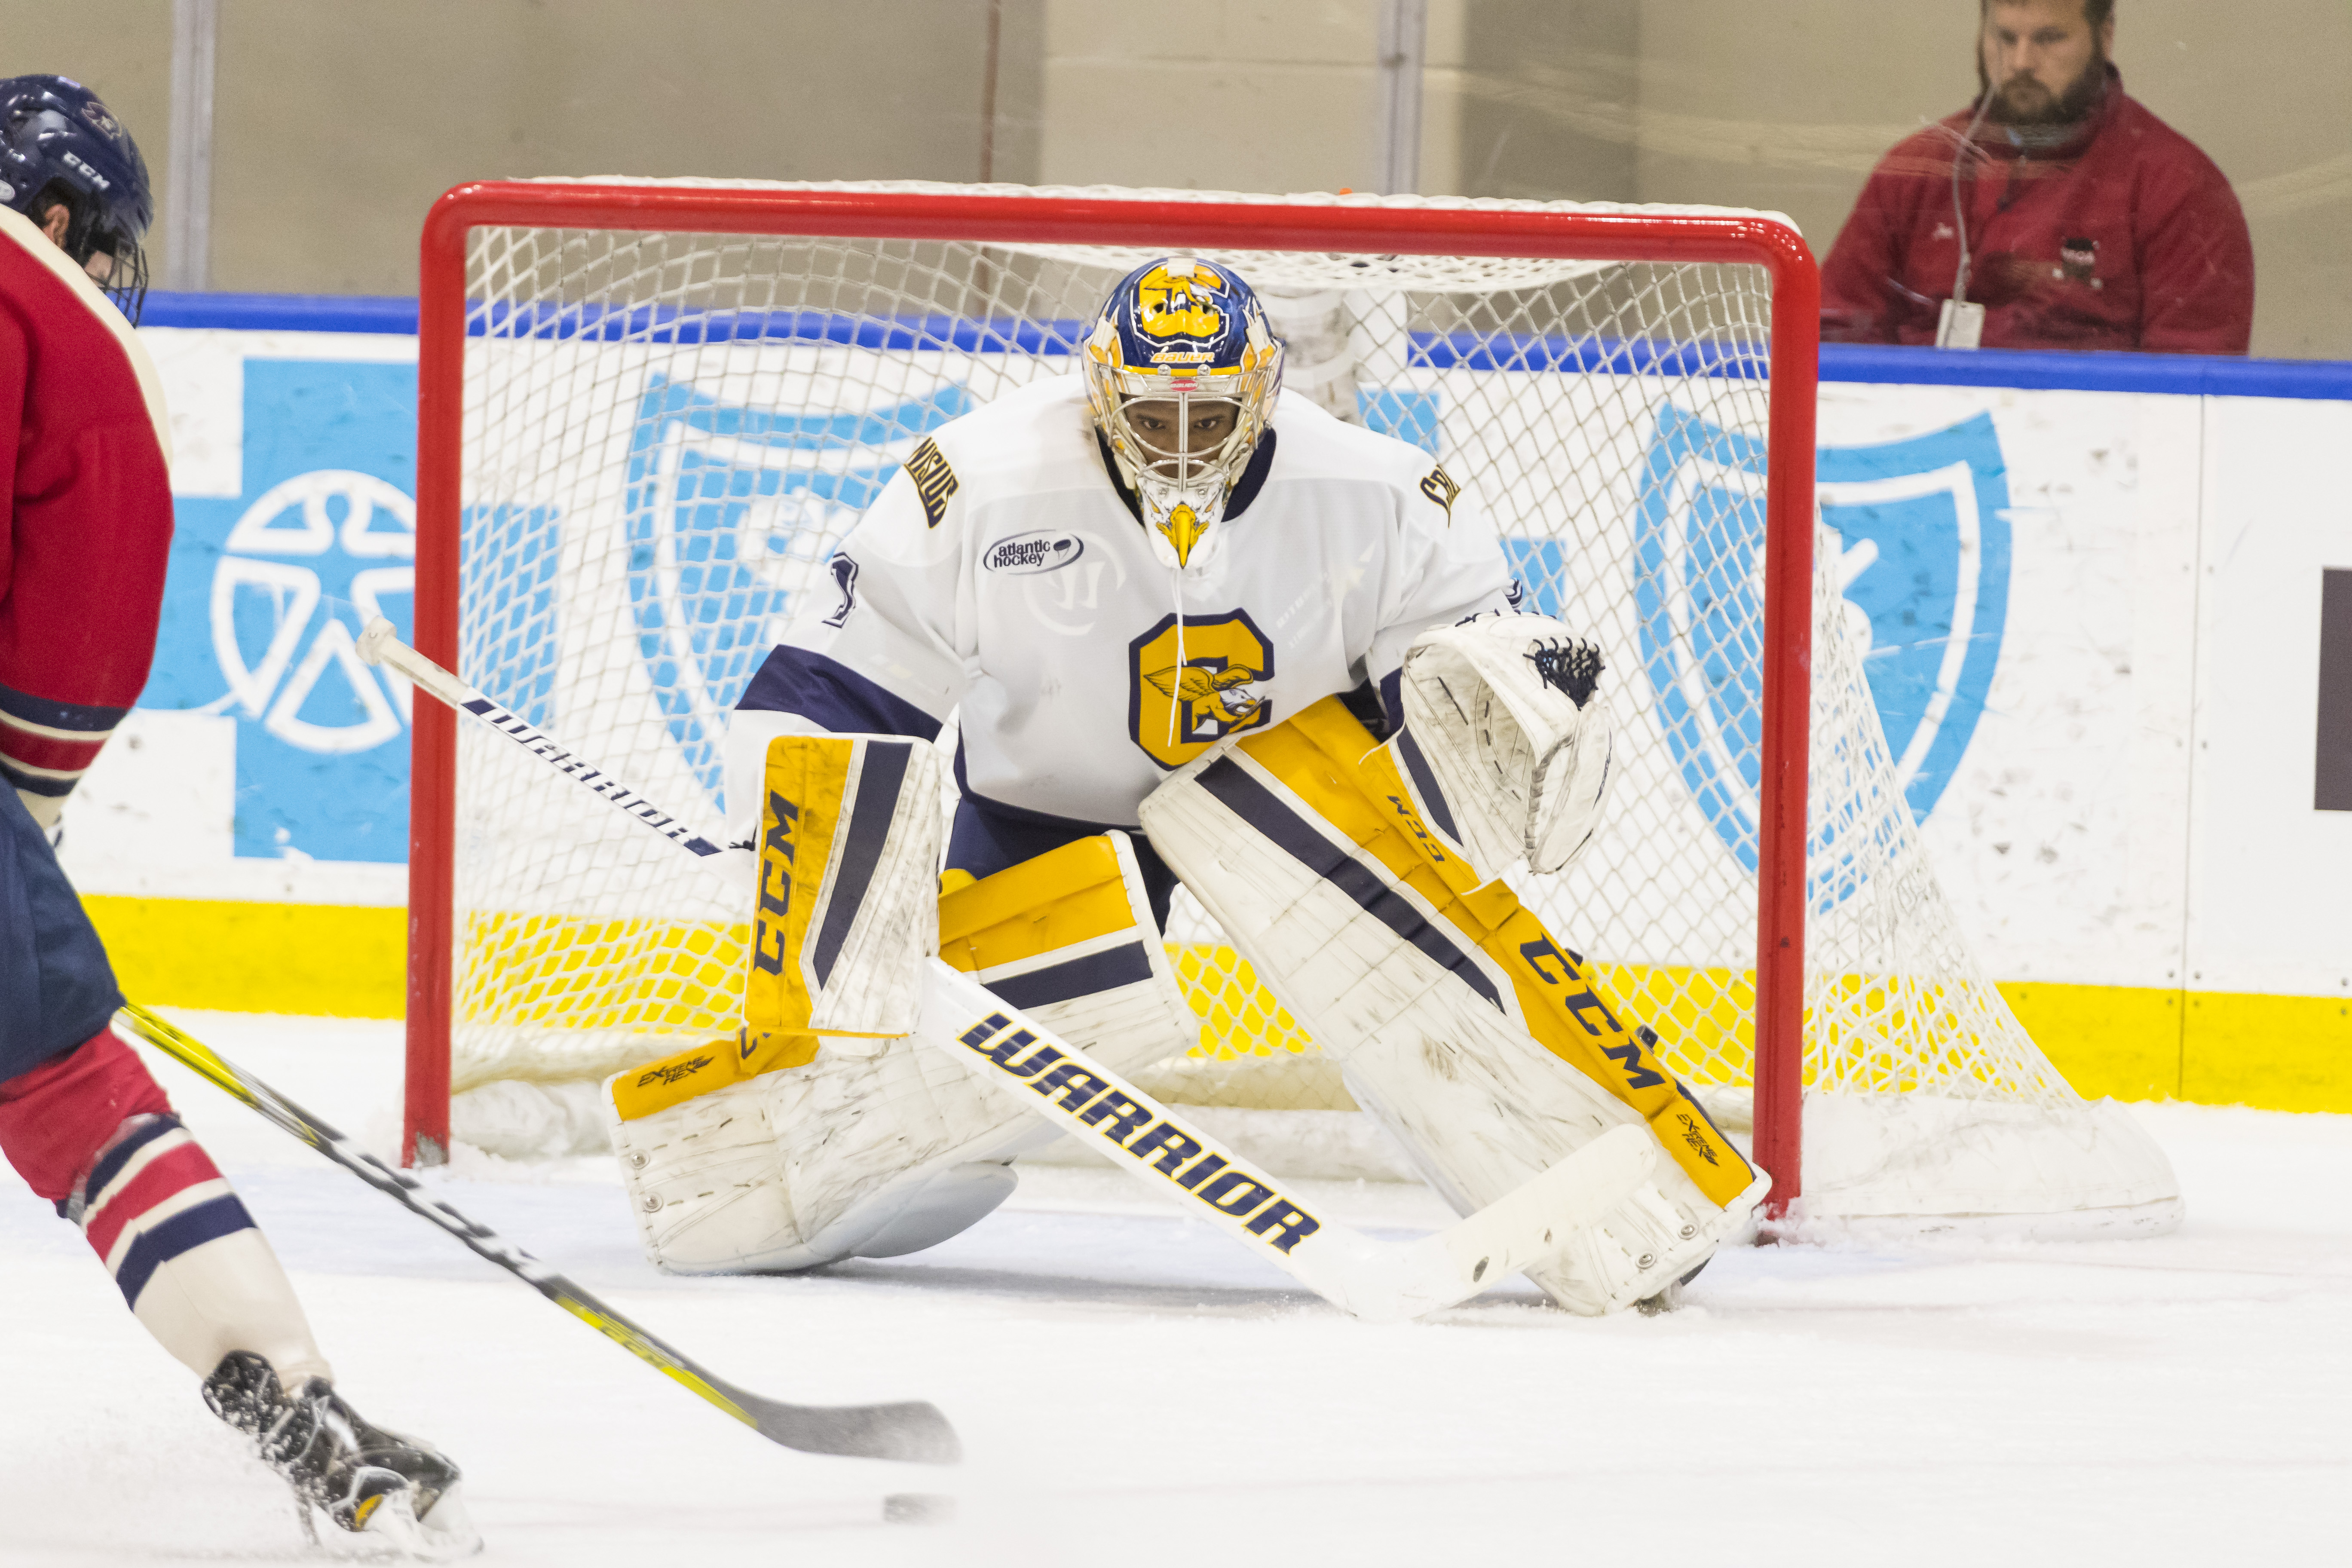 Charles Williams  hockey. (Canisius Athletic Communications.)